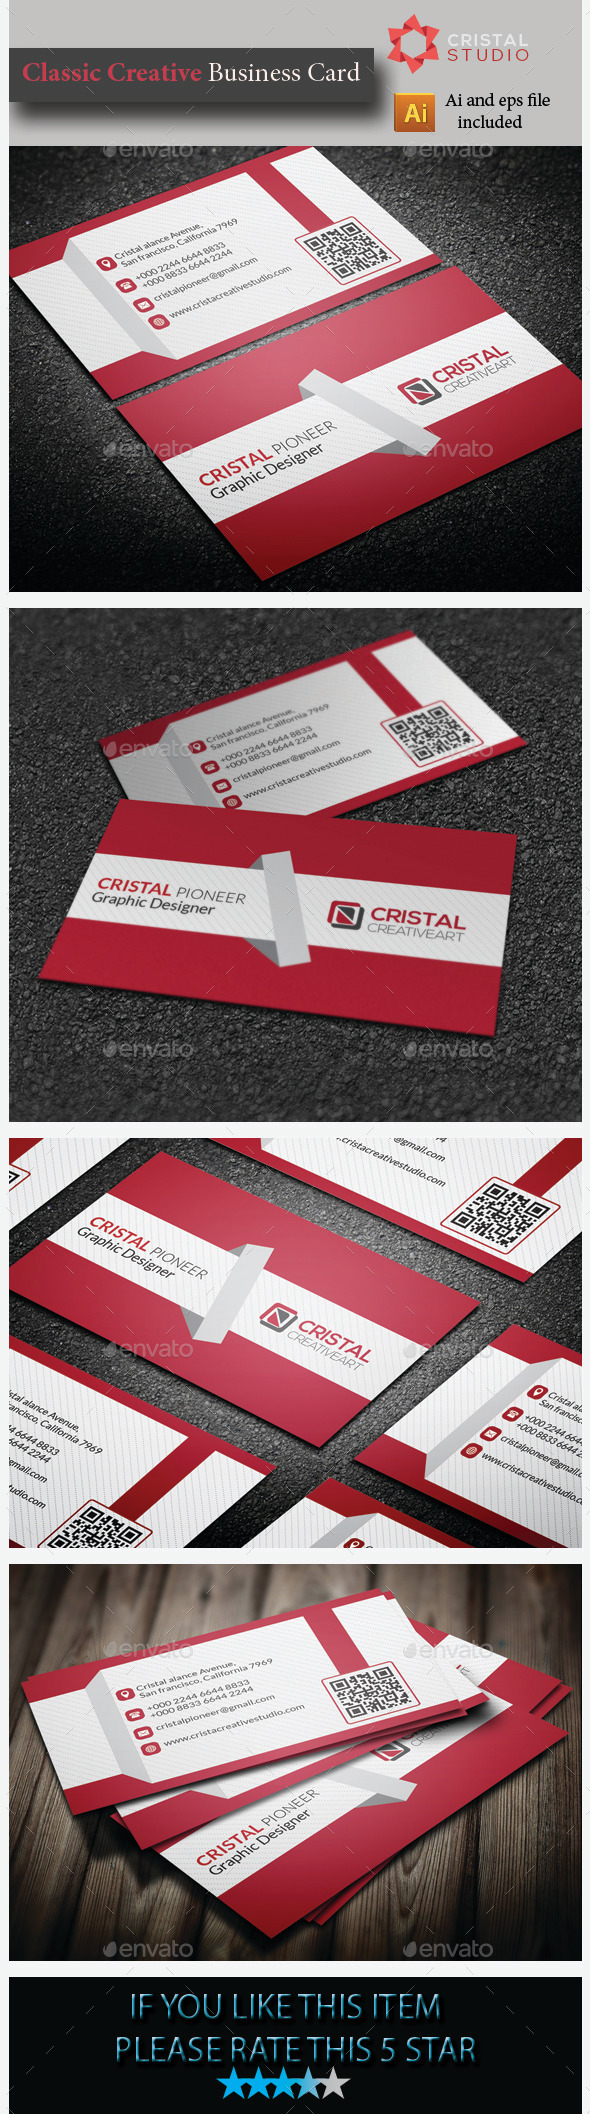 Classic Creative Business Card - Creative Business Cards